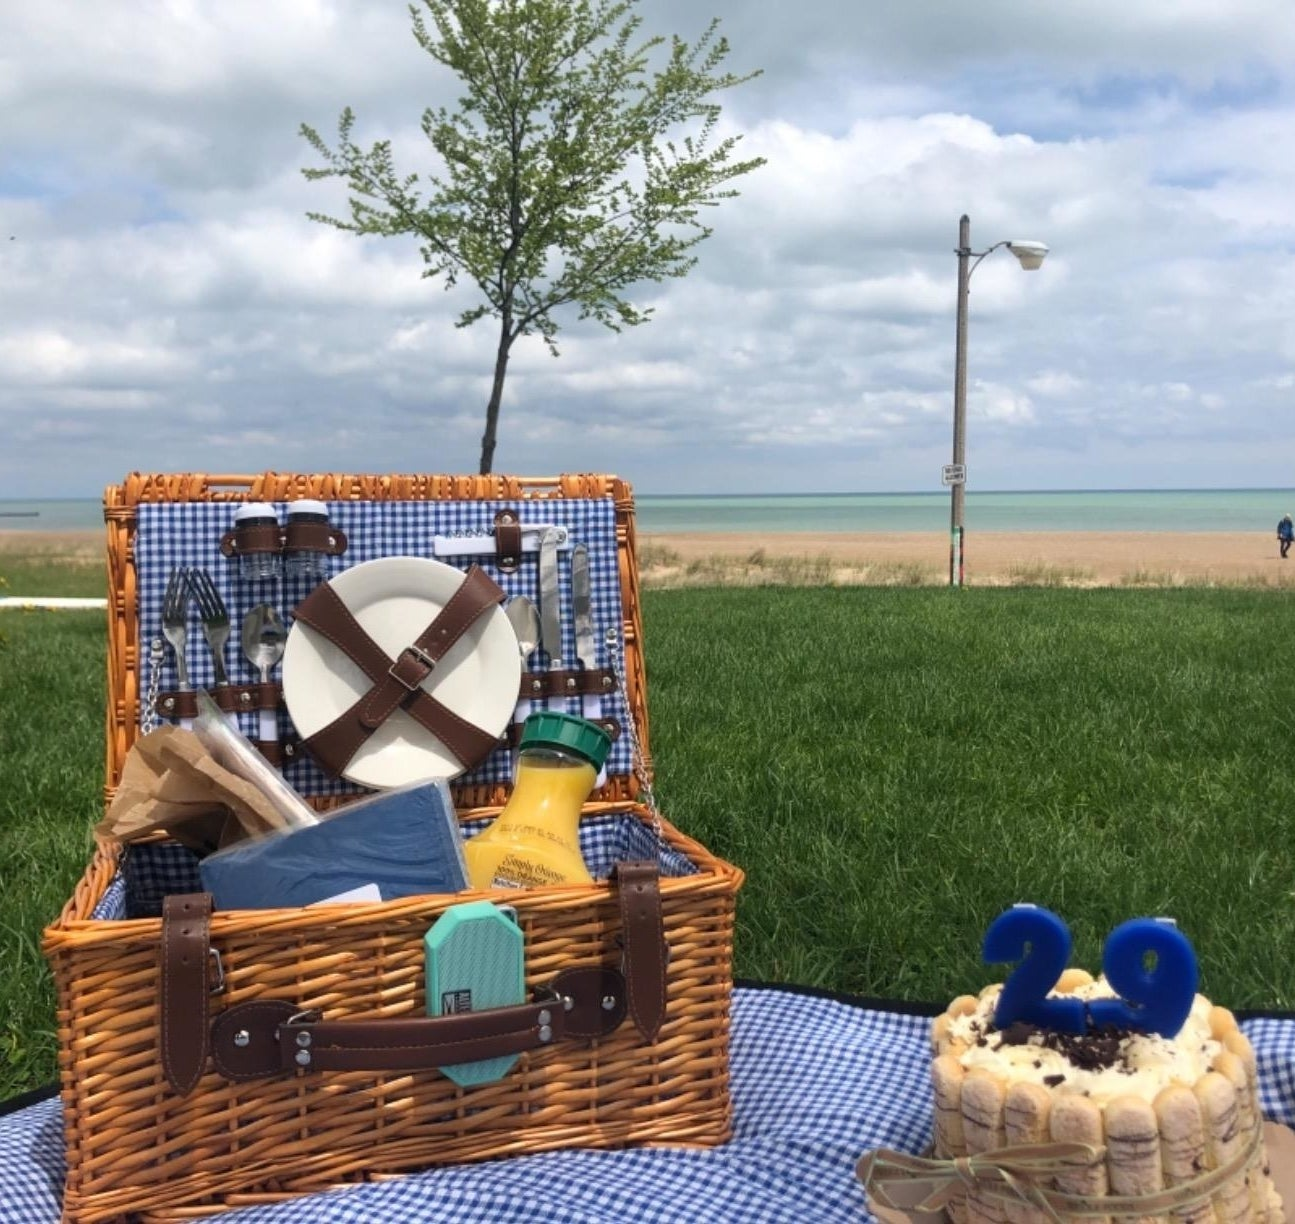 reviewer's open basket on a blanket at the beach with plates, etc strapped securely to the lid